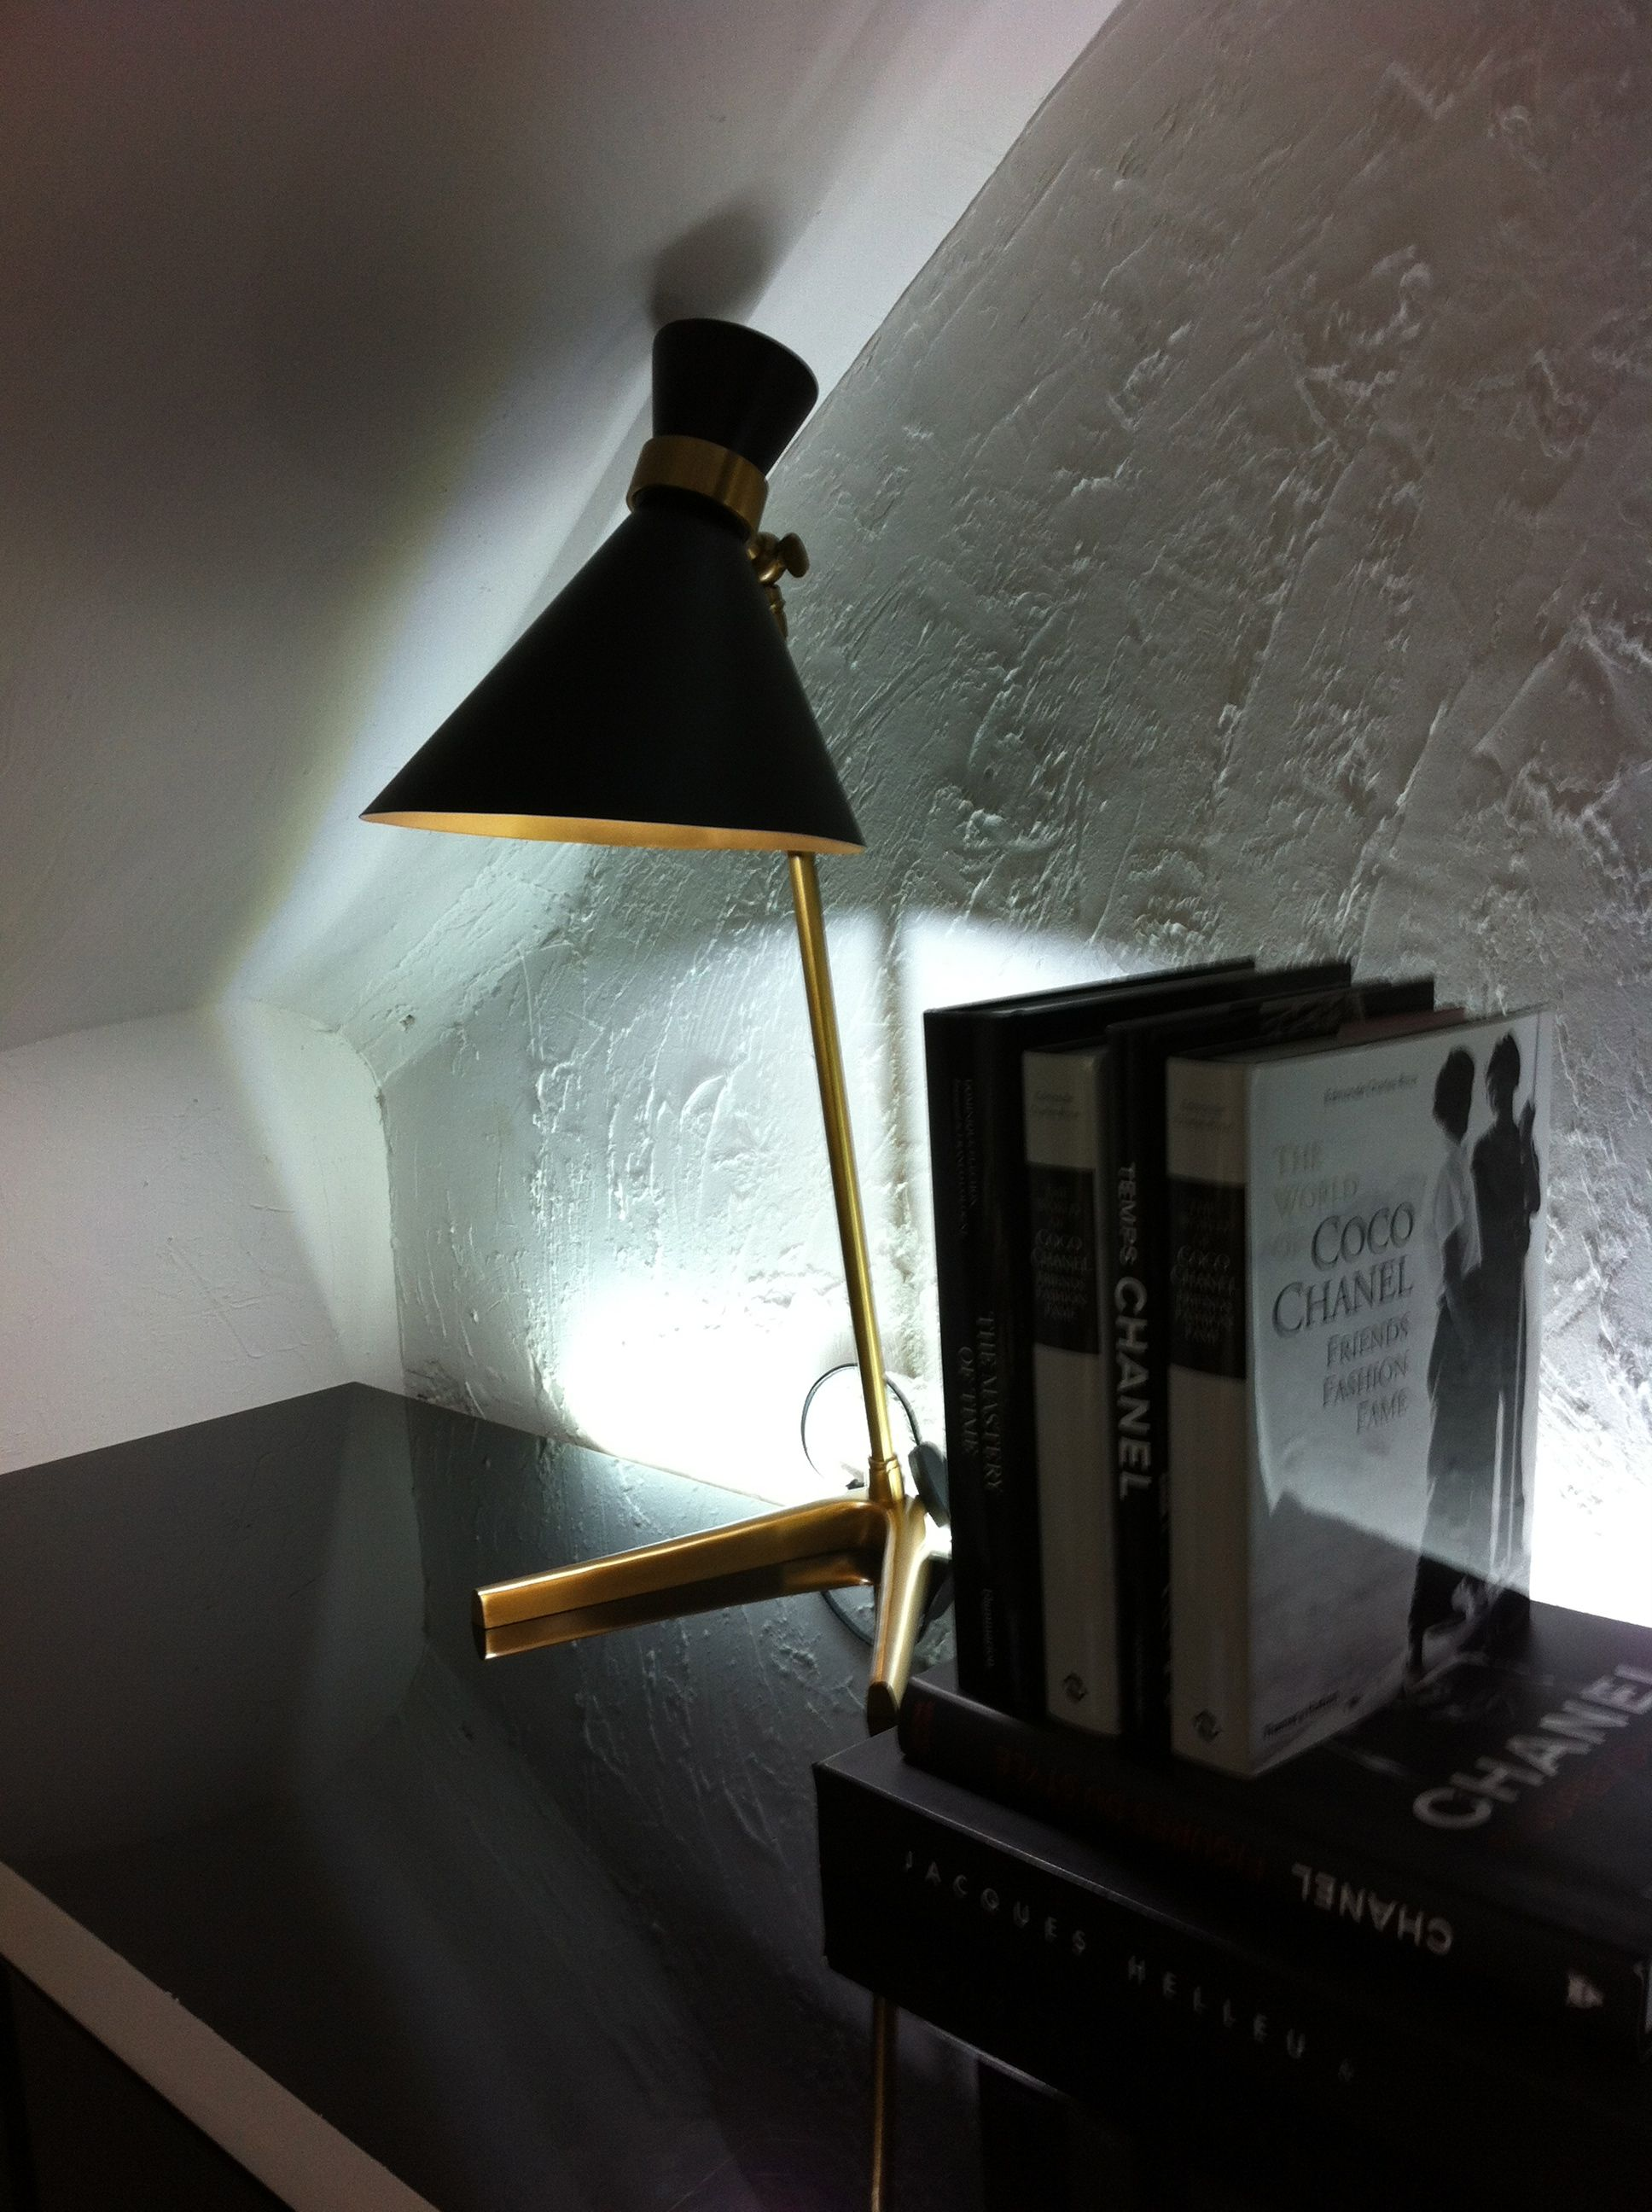 Peggy Table Lamp GONG @ CHANEL Rue Cambon, Visit the site www.gong.co.uk